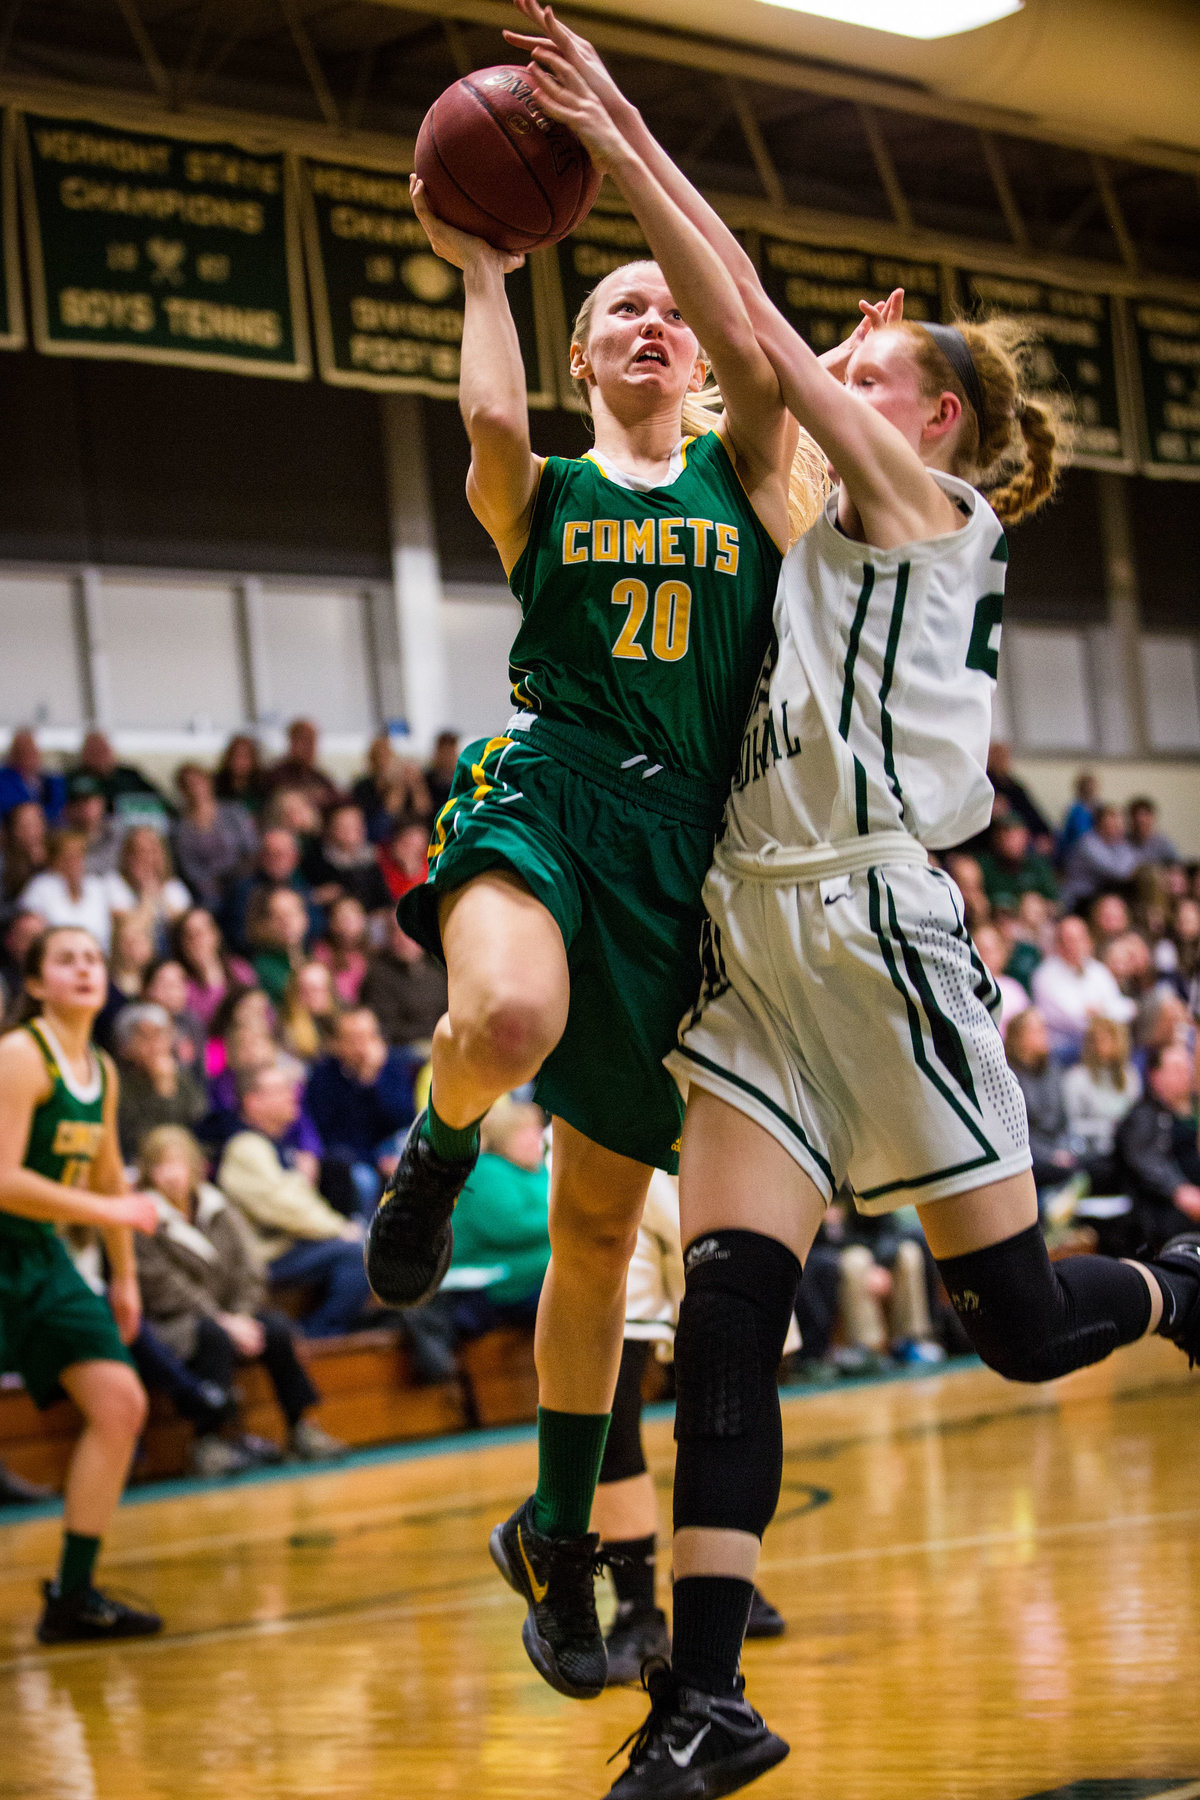 Hall-Potvin Photography Vermont Basketball Sports Photographer-13